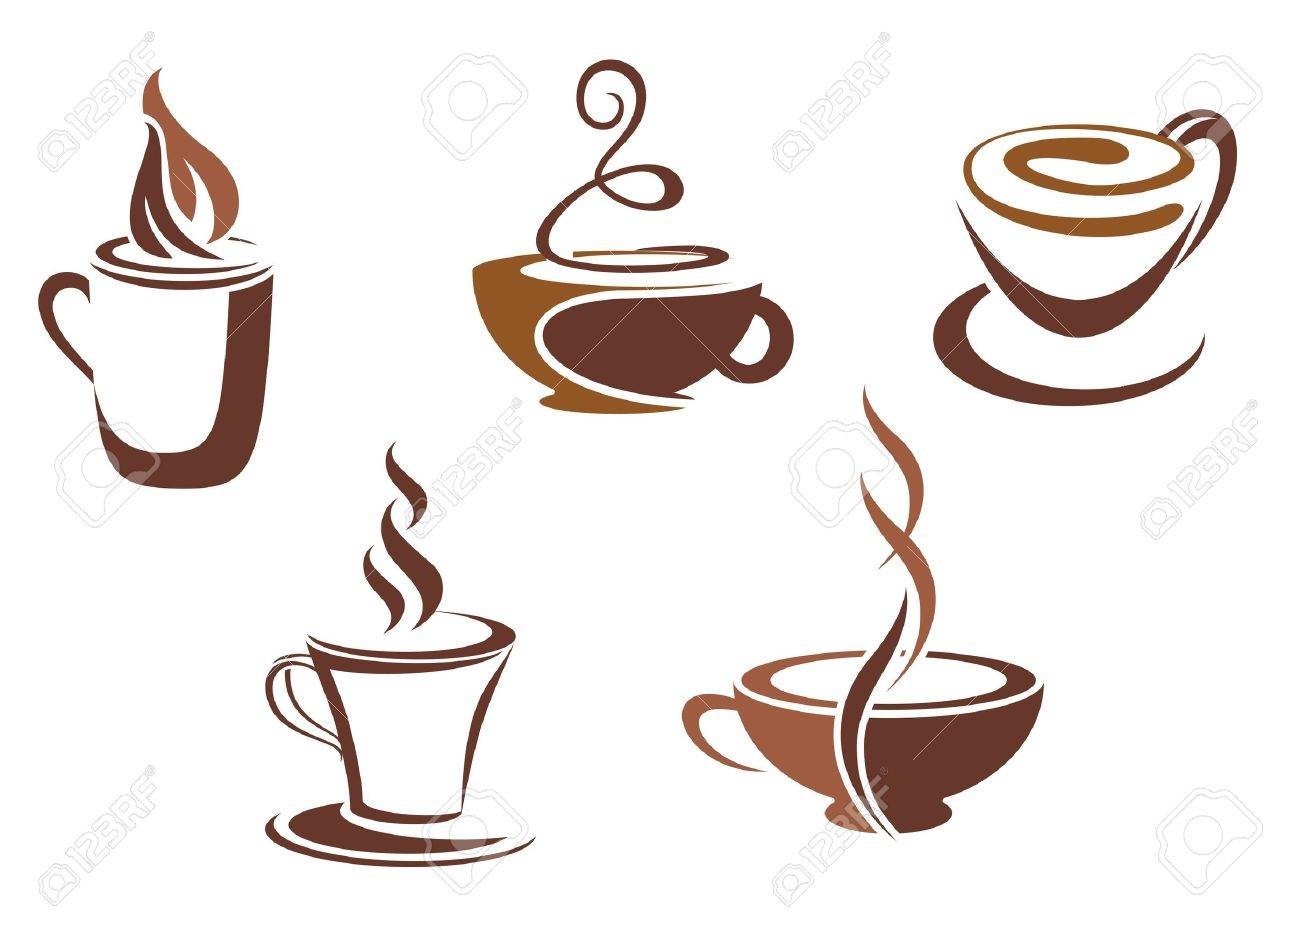 Coffee and tea symbols and icons for food design Stock Vector - 9609380